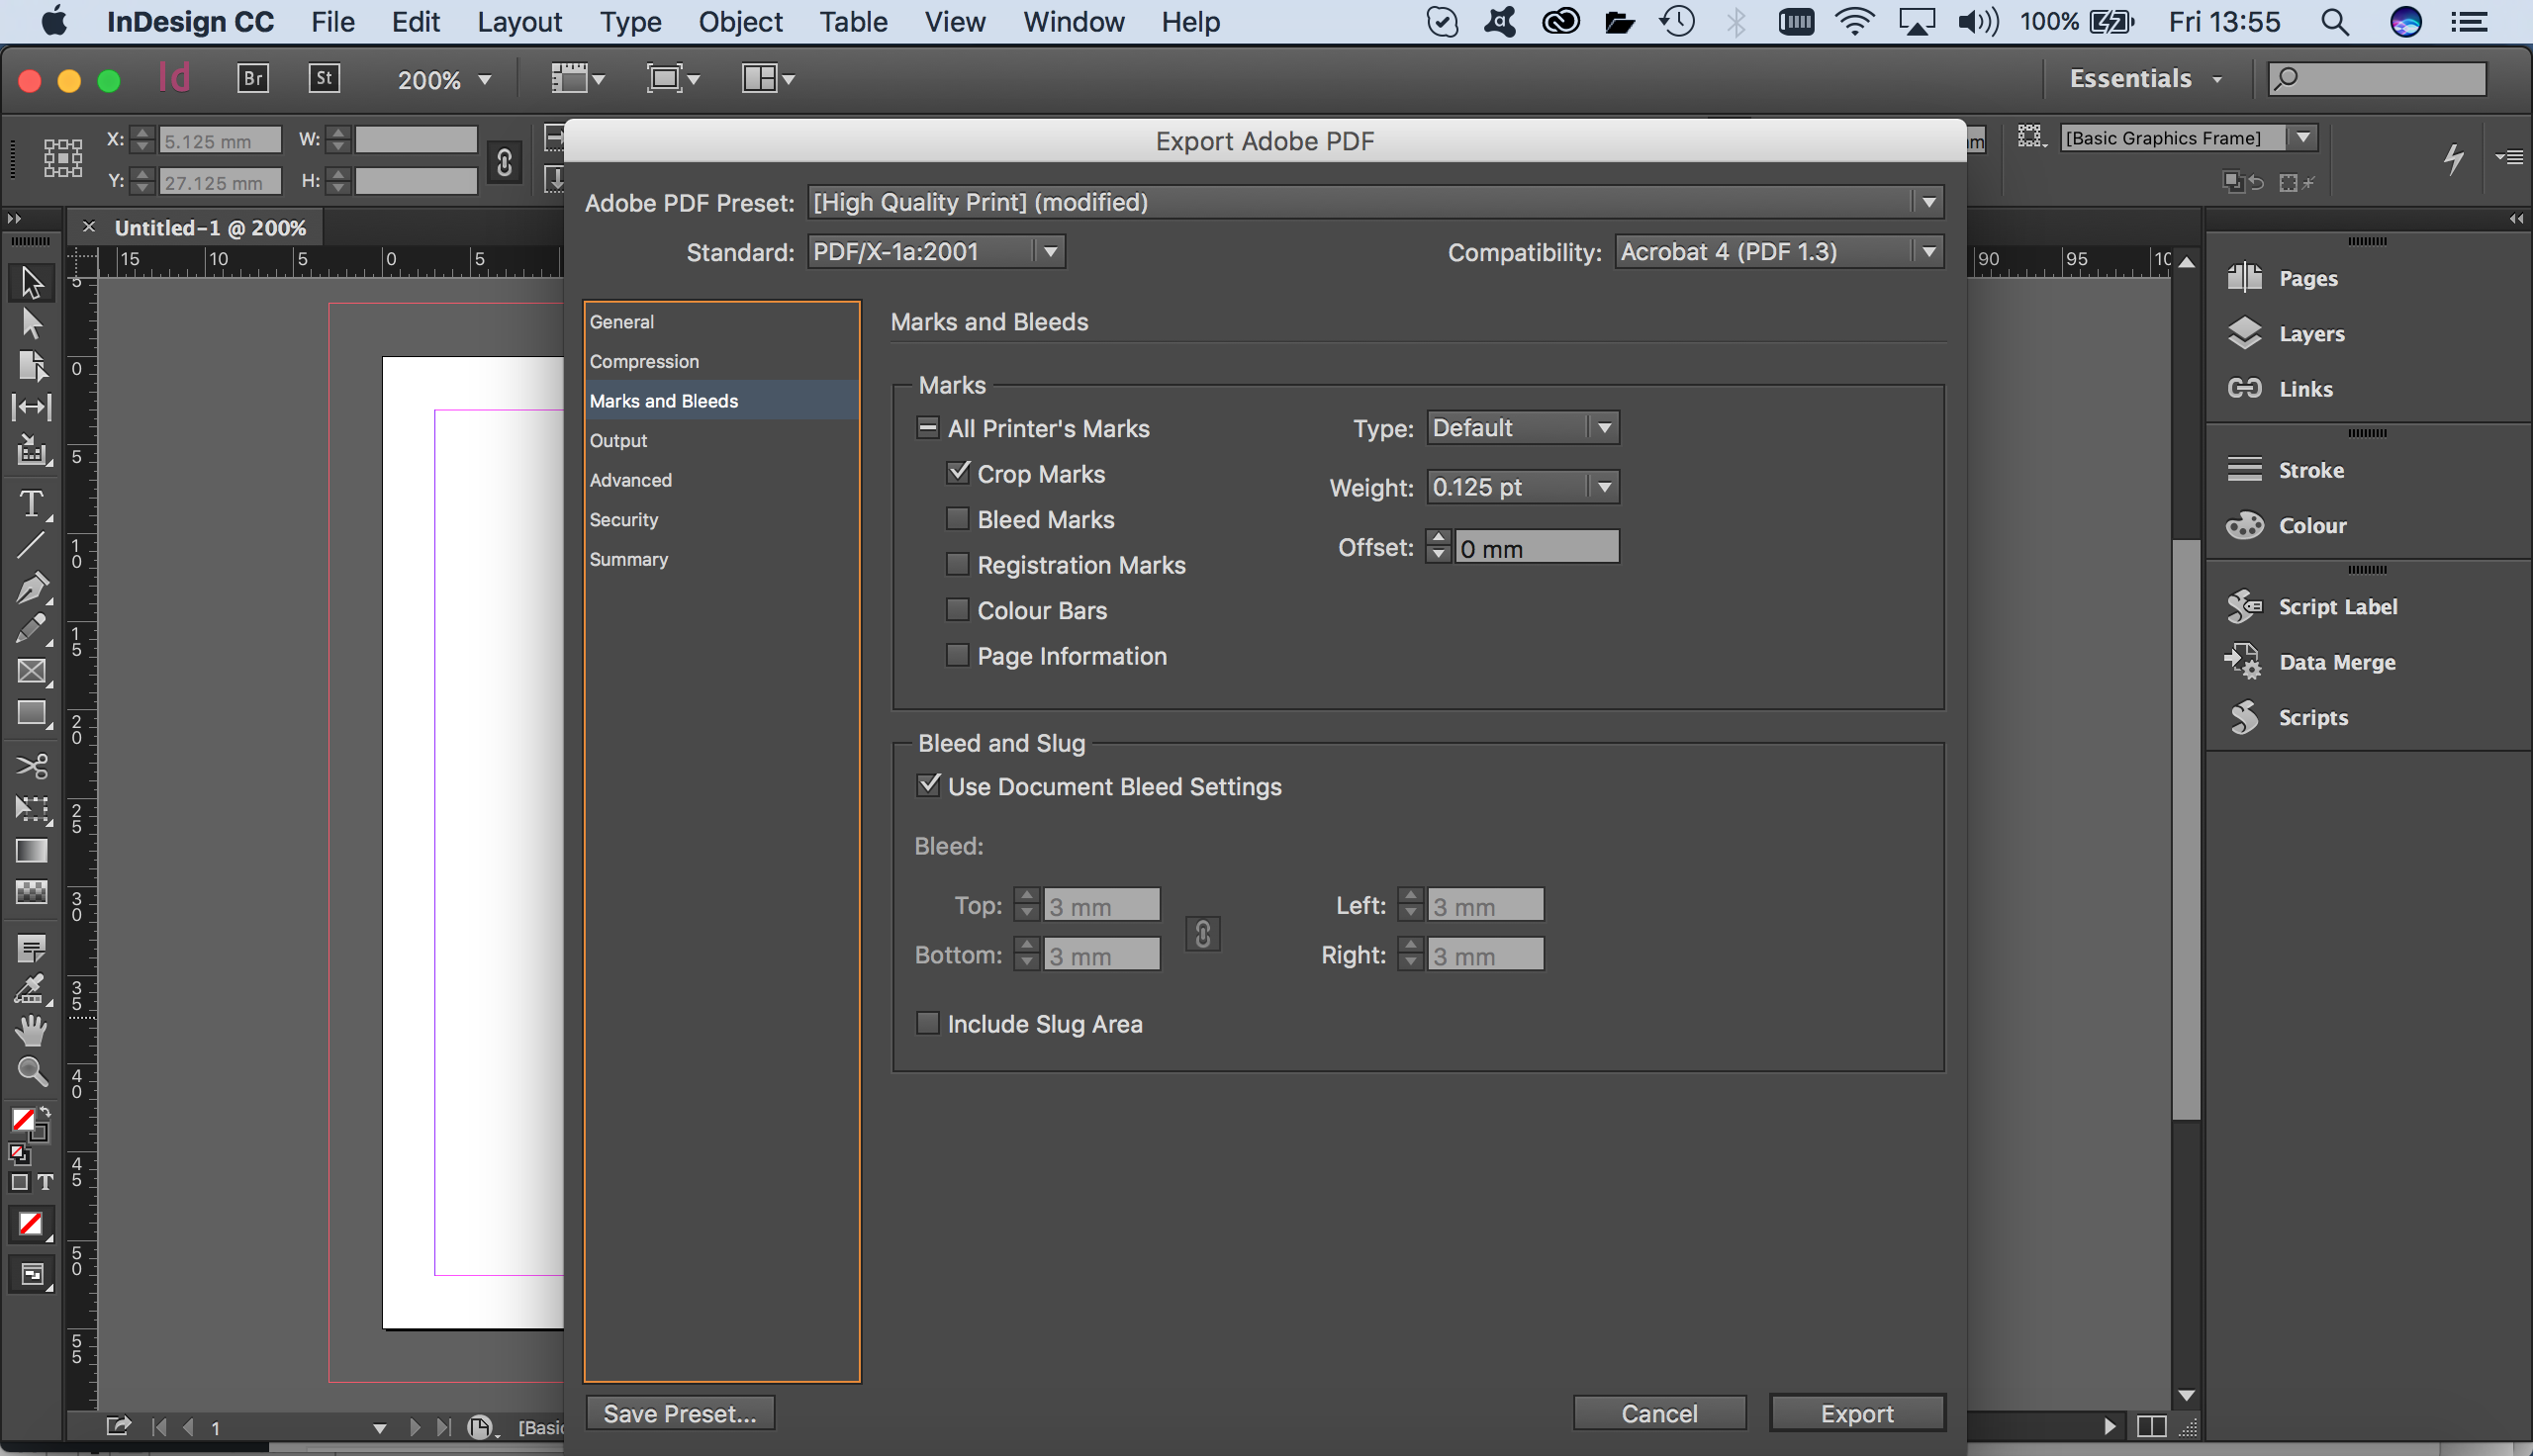 indesign export pdf with bleed